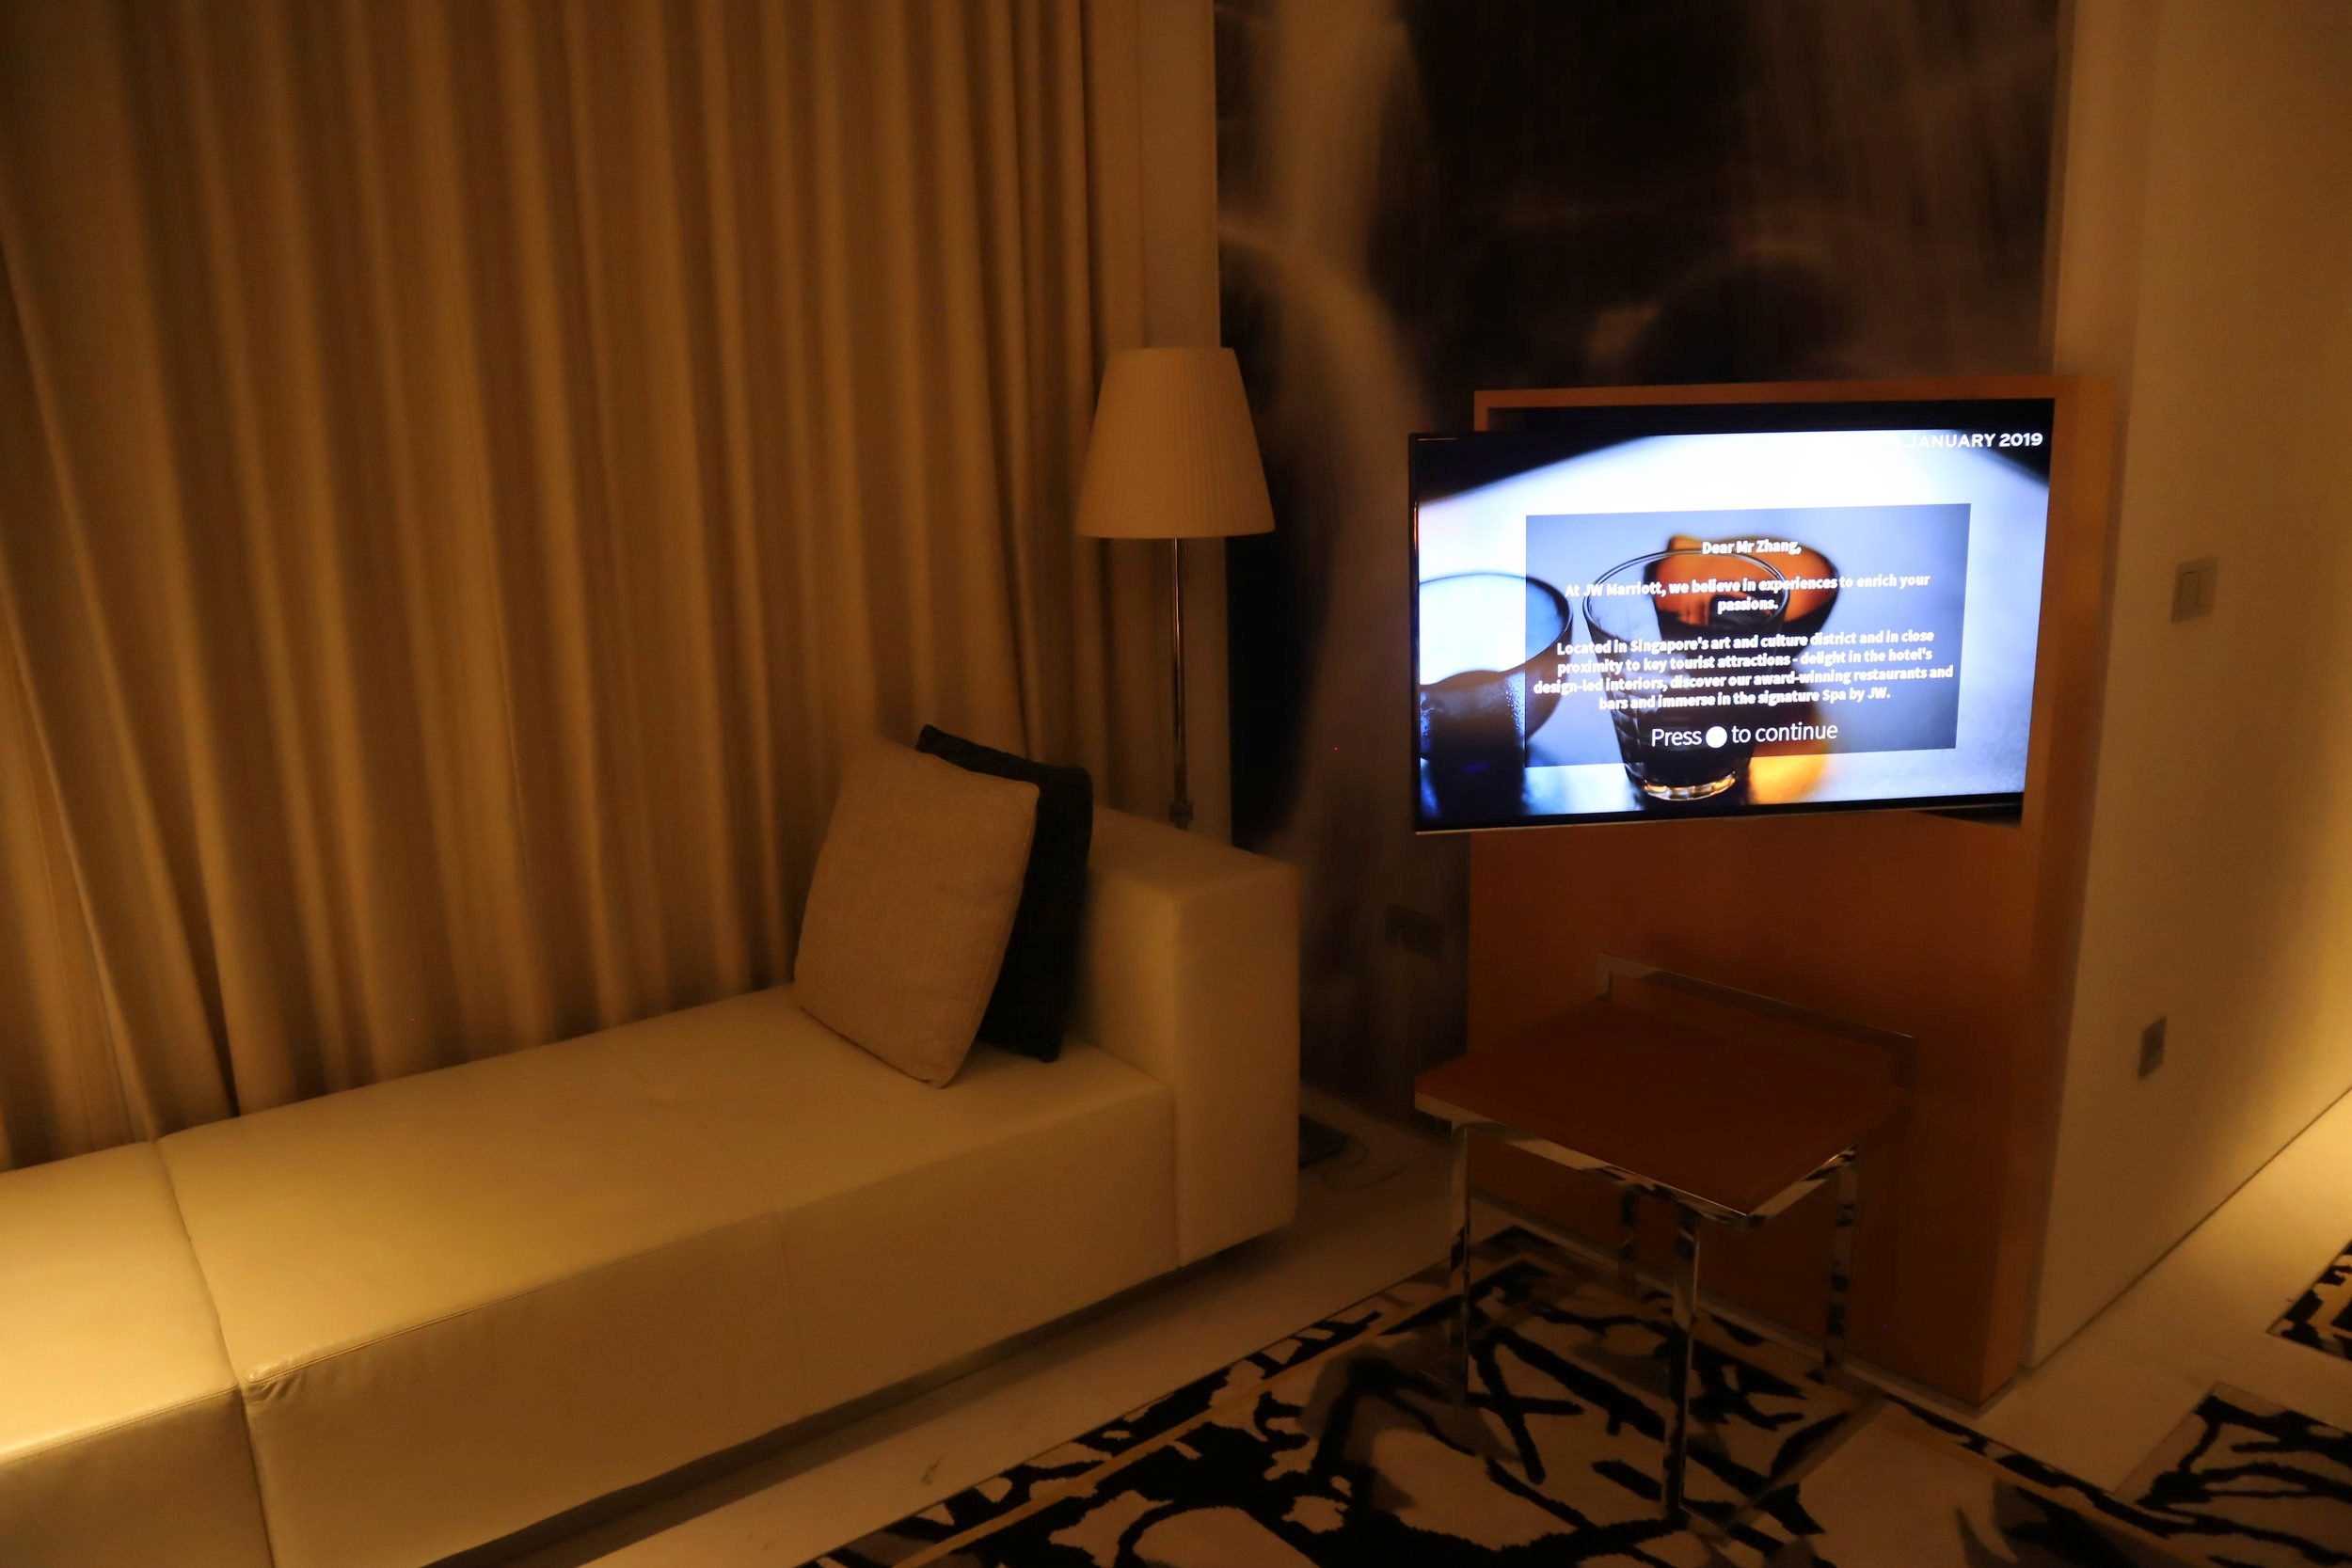 JW Marriott Singapore South Beach – Television